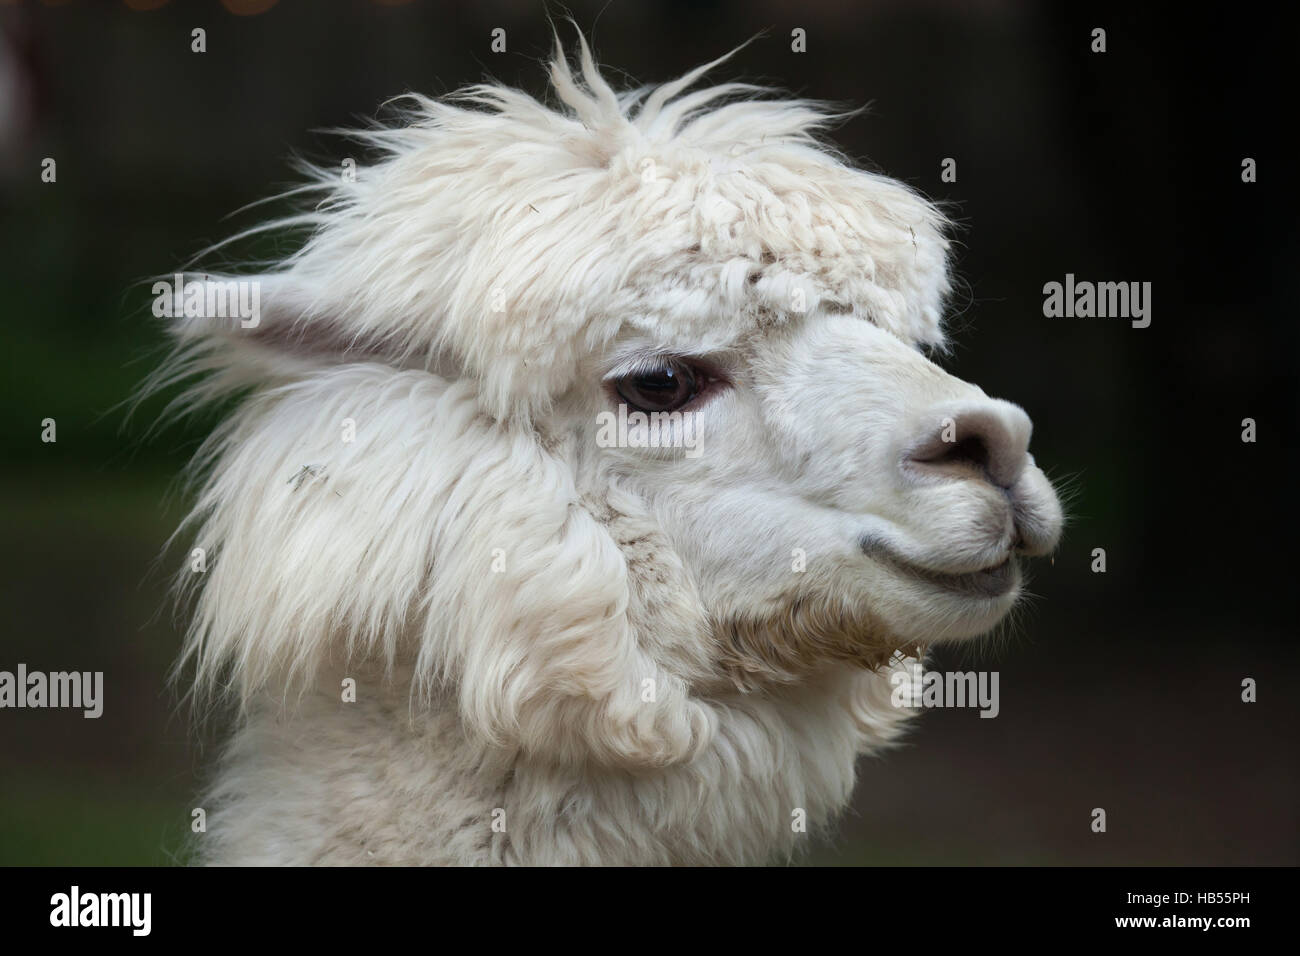 Llama (Lama glama). Domestic animal. - Stock Image